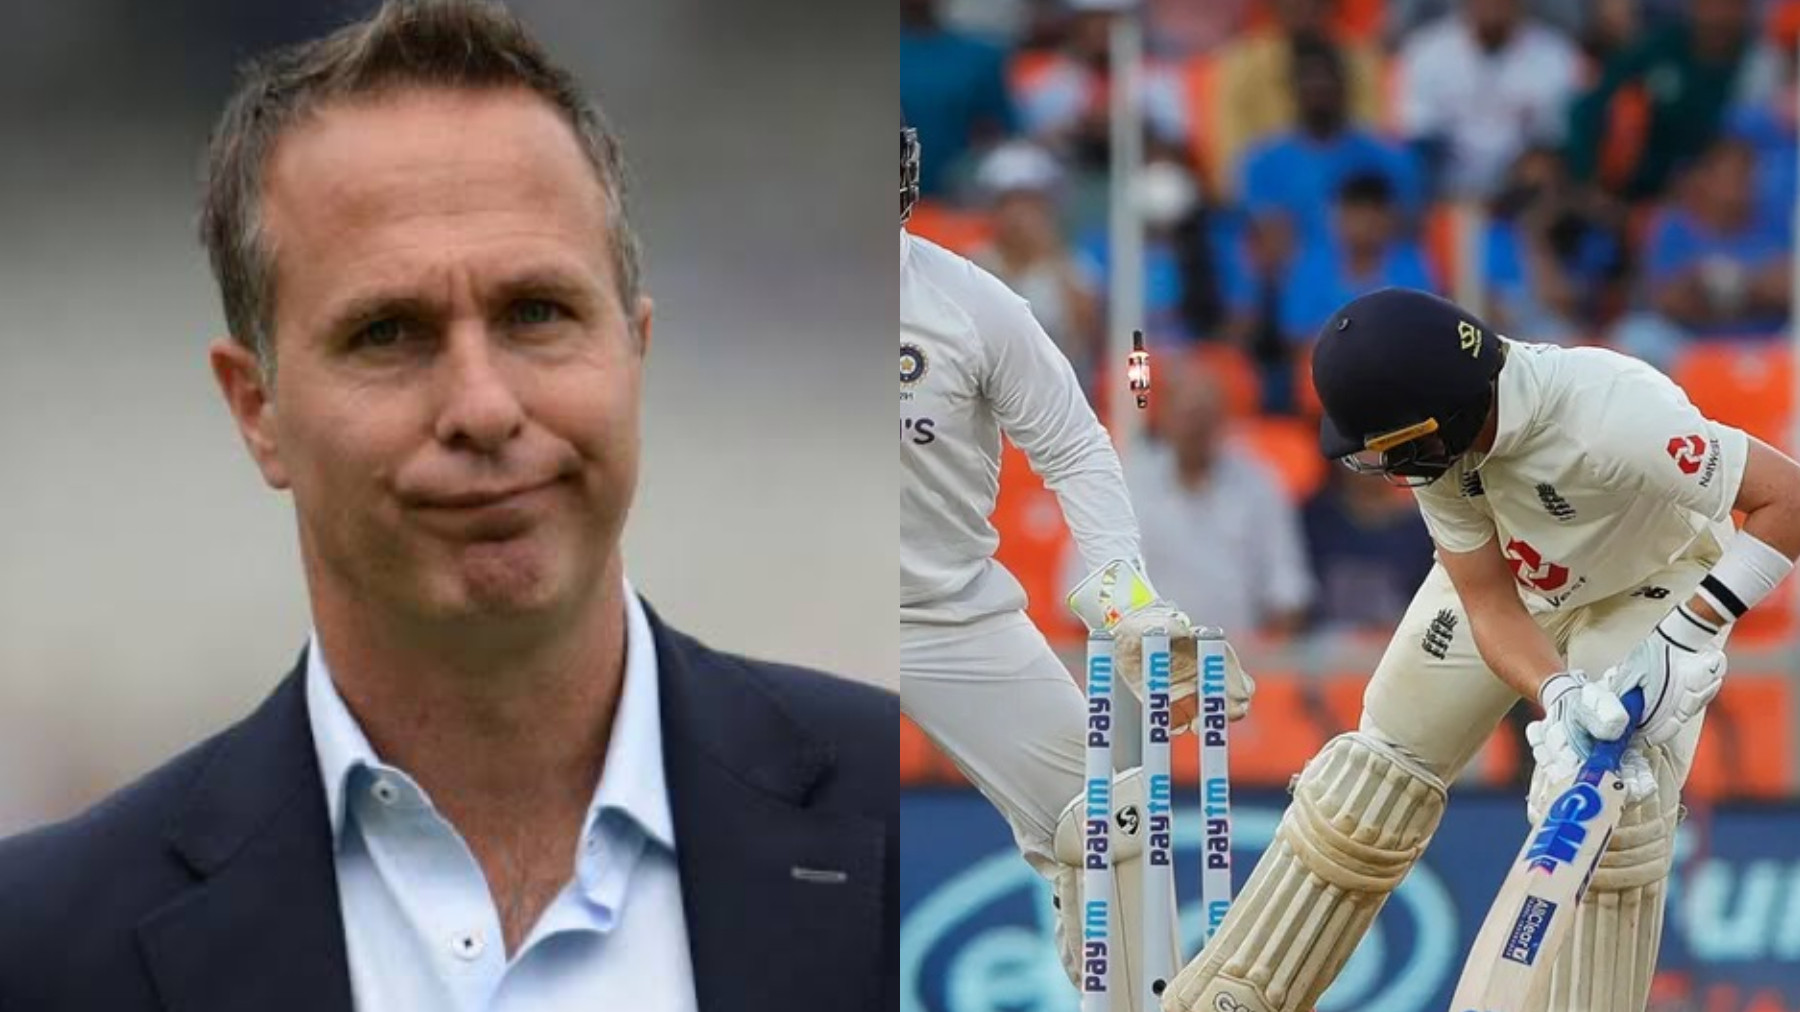 IND v ENG 2021: Michael Vaughan melts down after England get bowled out for 81; India set 49 to win